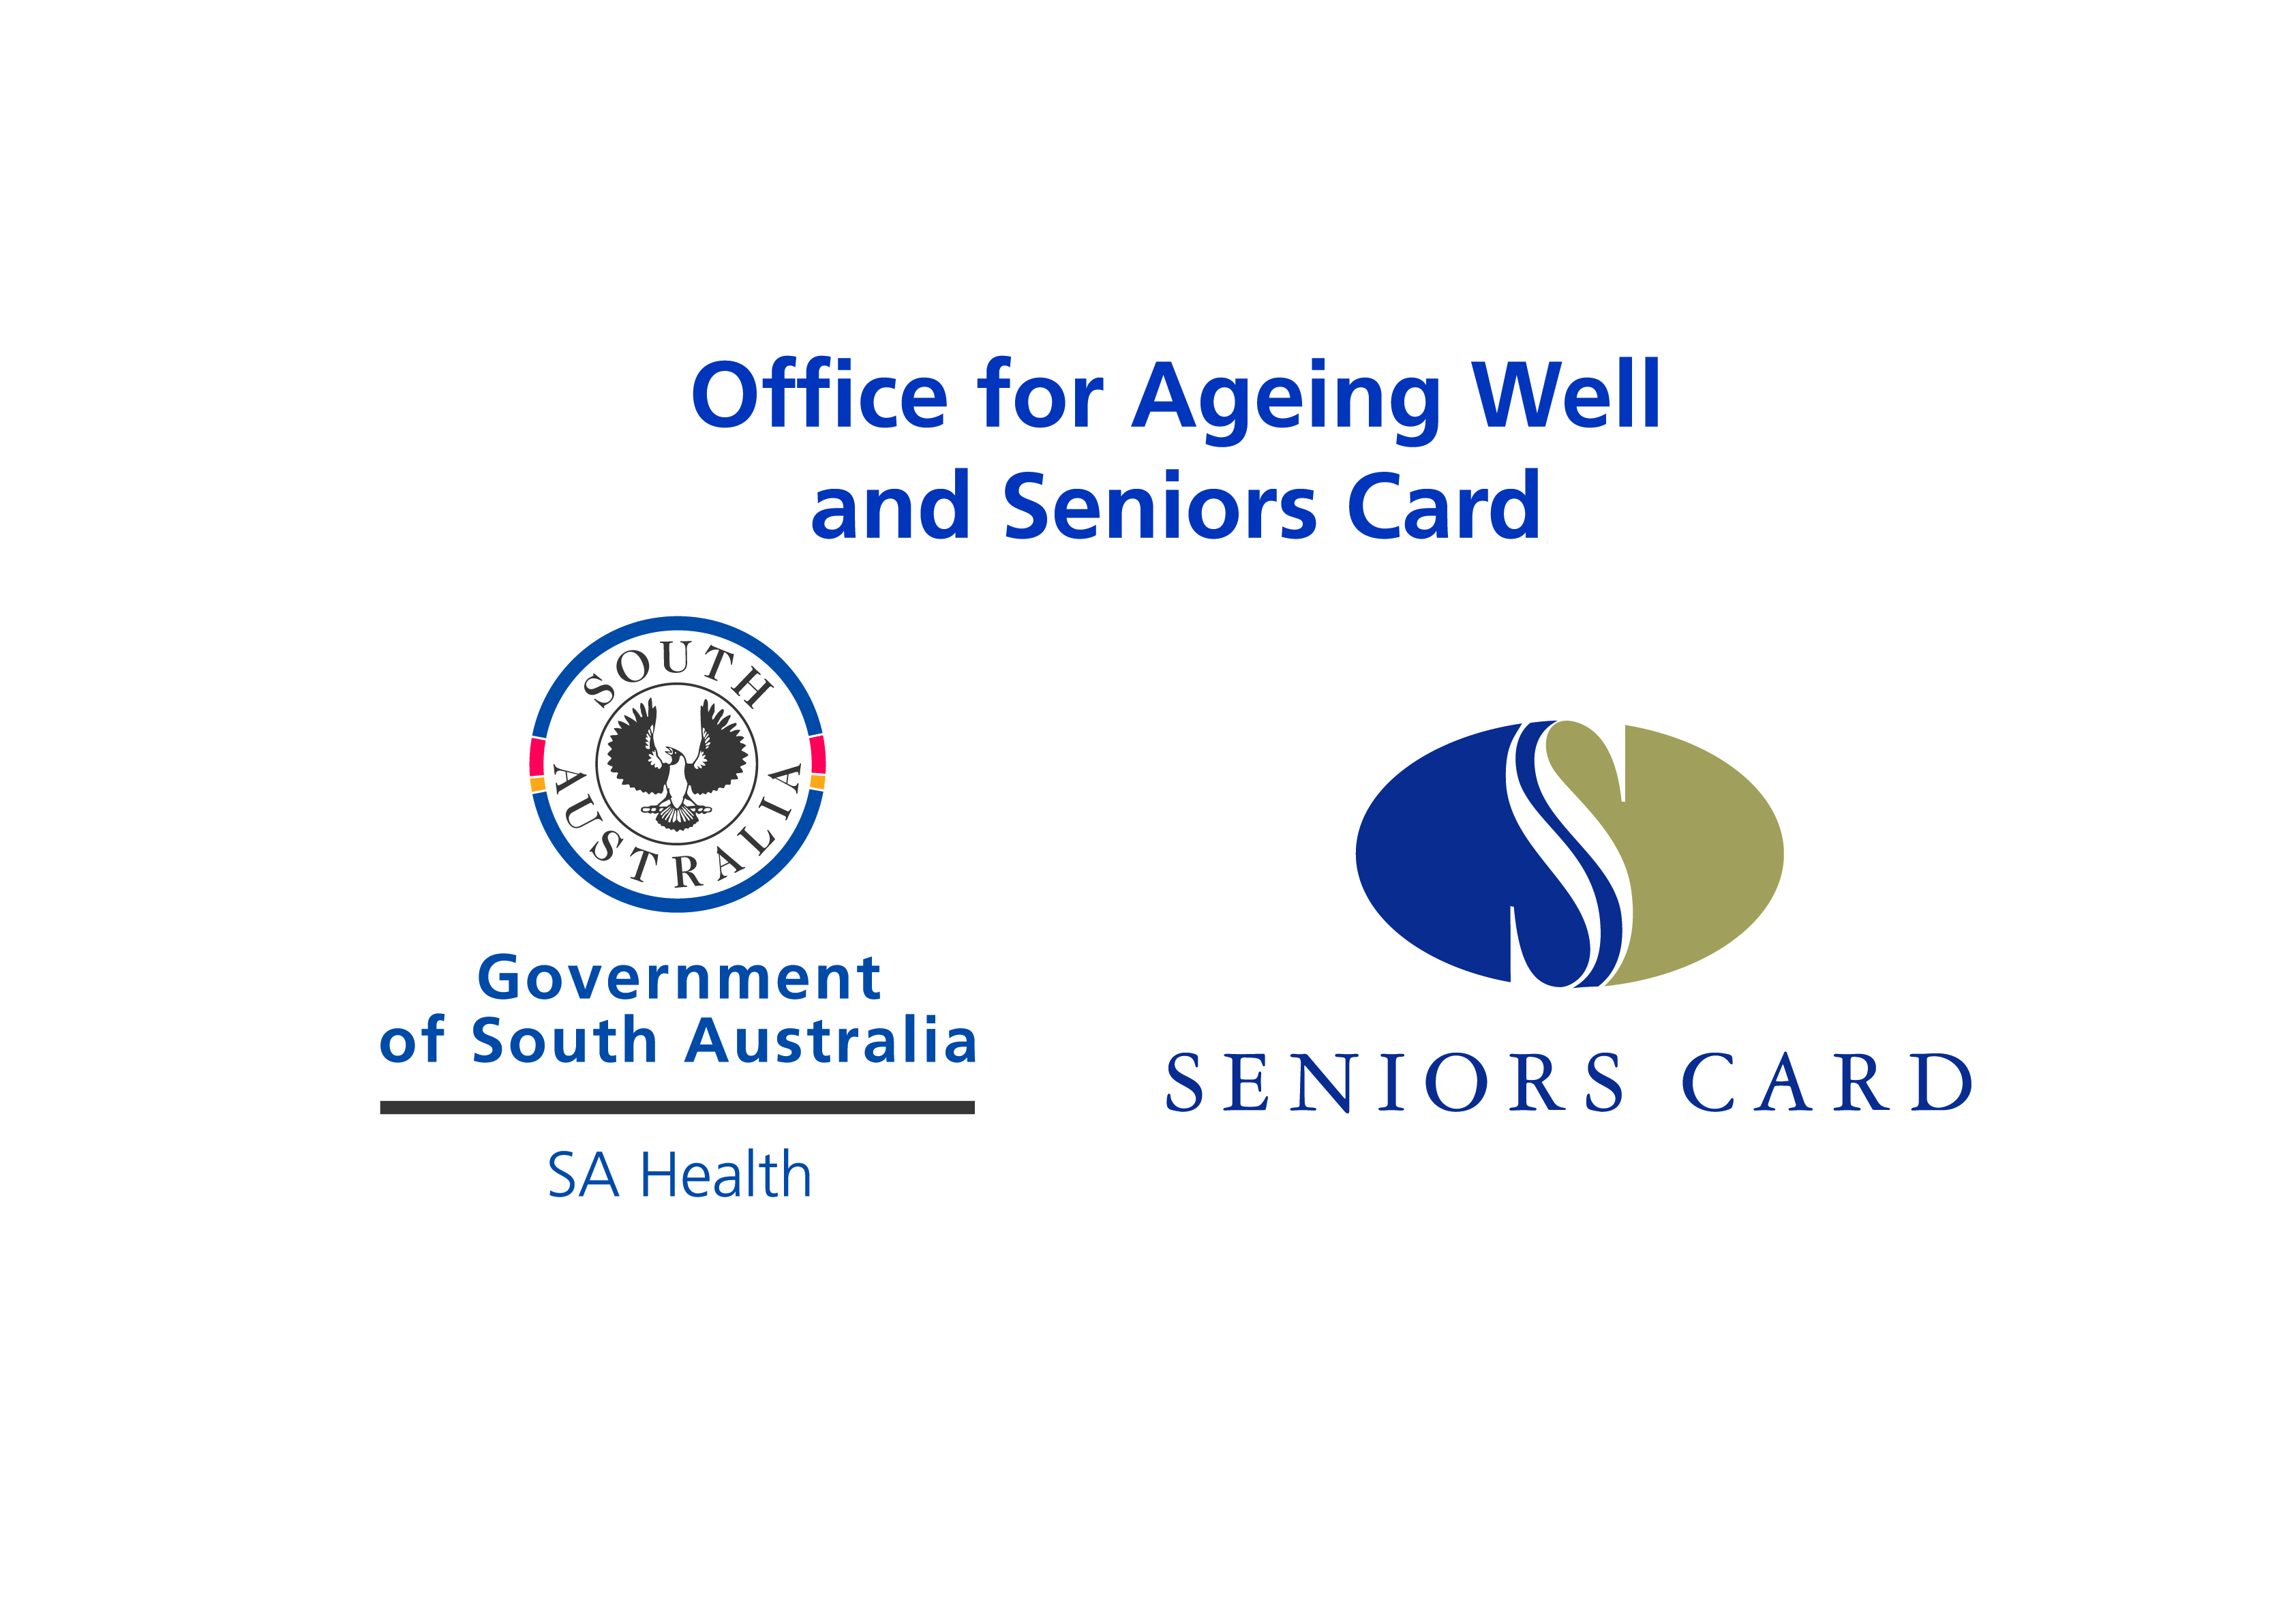 Office for Ageing Well and Seniors Card